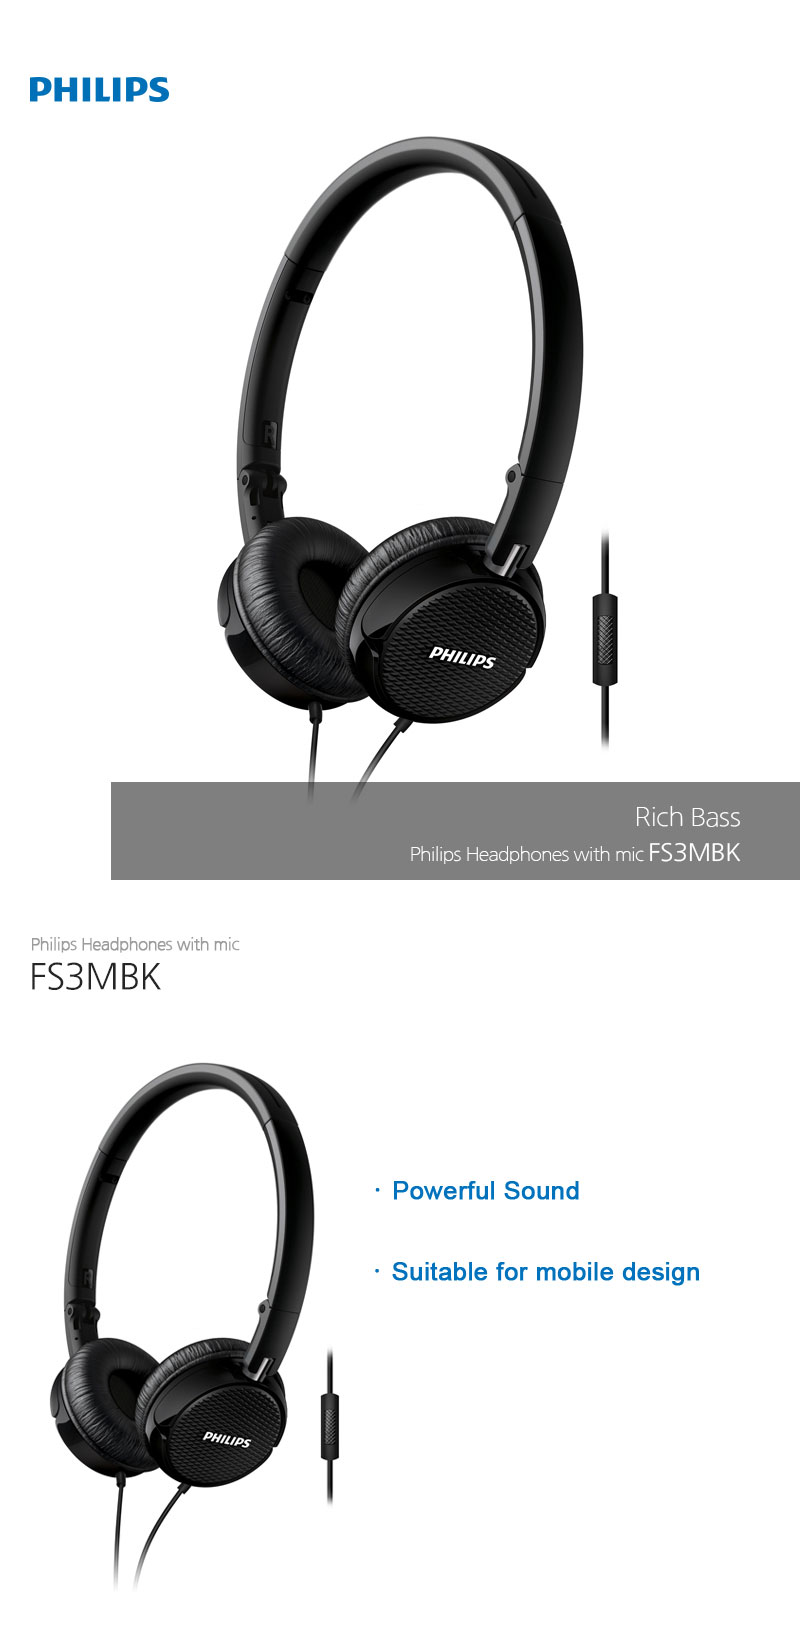 Philips chromz upbeat earbuds - wired earbuds jvc